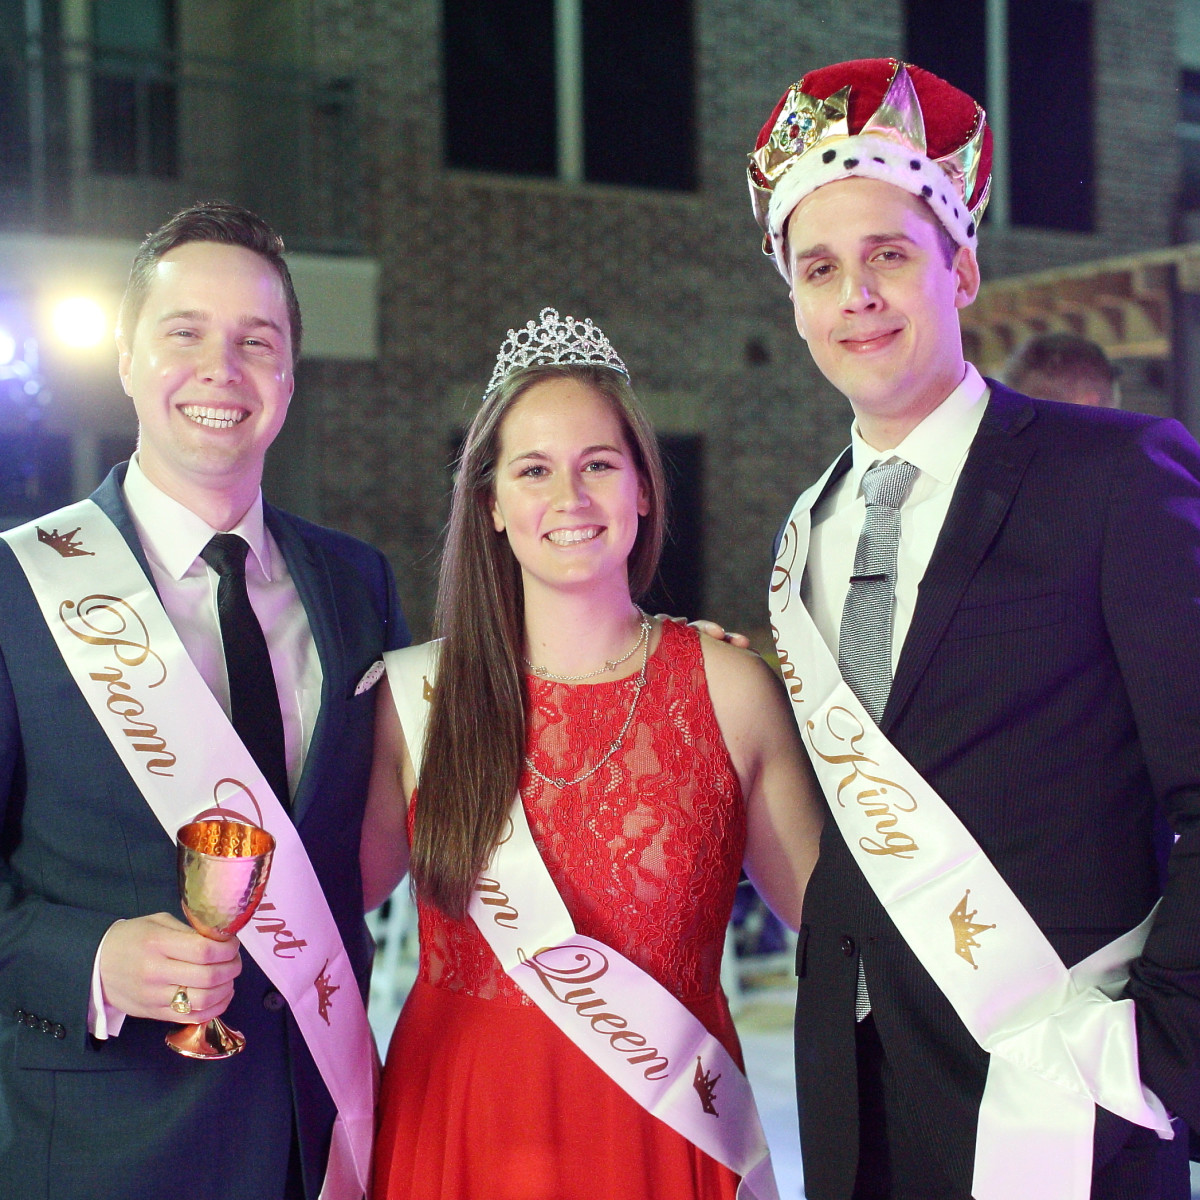 Houston, Big Brothers Big Sisters YP The Big Prom, Feb 2017, Michael Clinton, Brittany Metcalf, Grant Inman